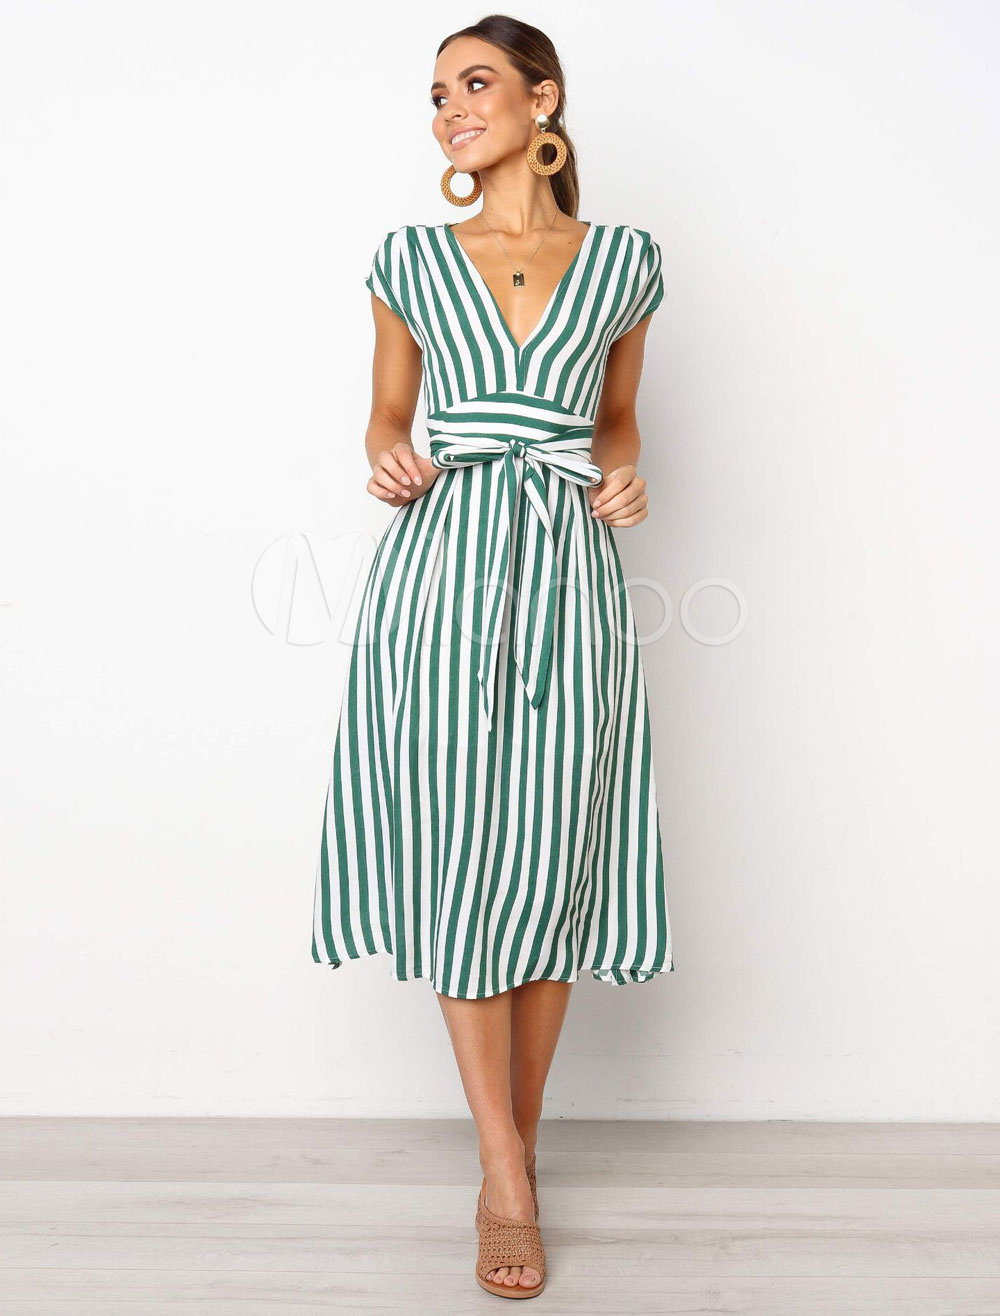 Striped Summer Dresses Plunging Cap Sleeve Tie Waist Long Dress Summer Dresses Striped Dress Summer Long Striped Dress [ 1316 x 1000 Pixel ]